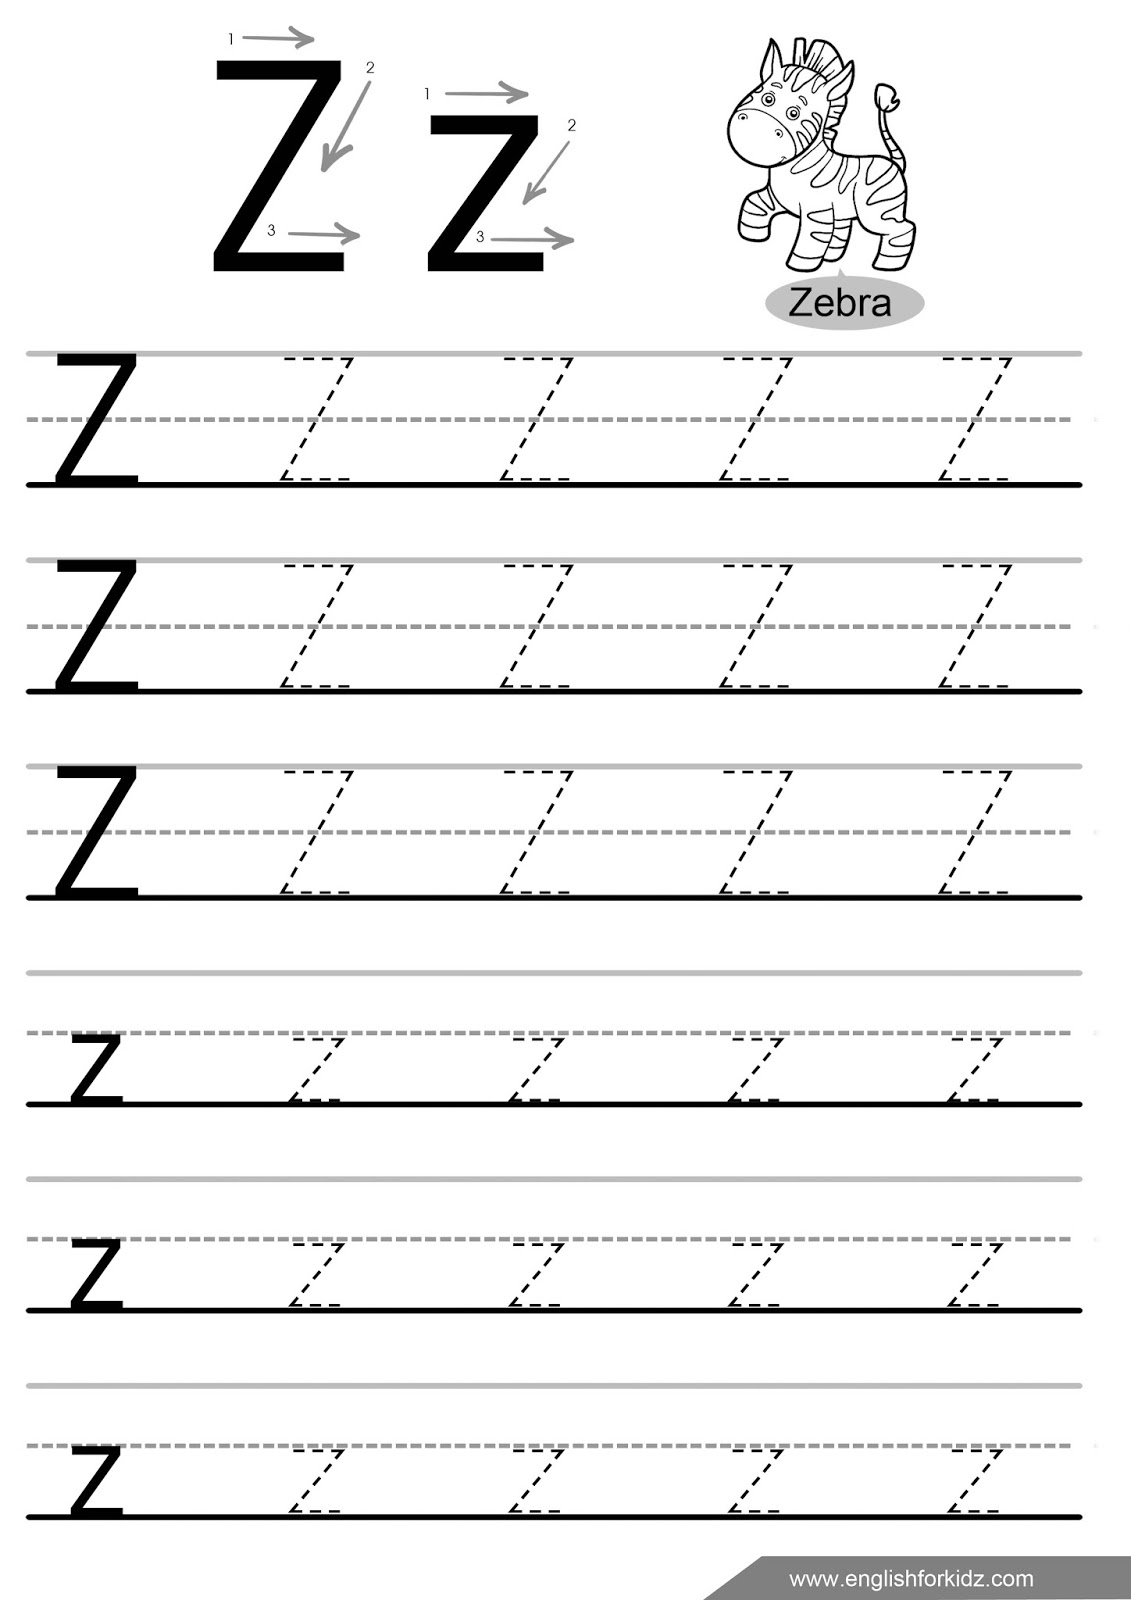 Letter Z Tracing Worksheet Coloring Book Writing Worksheets within Letter Z Tracing Preschool